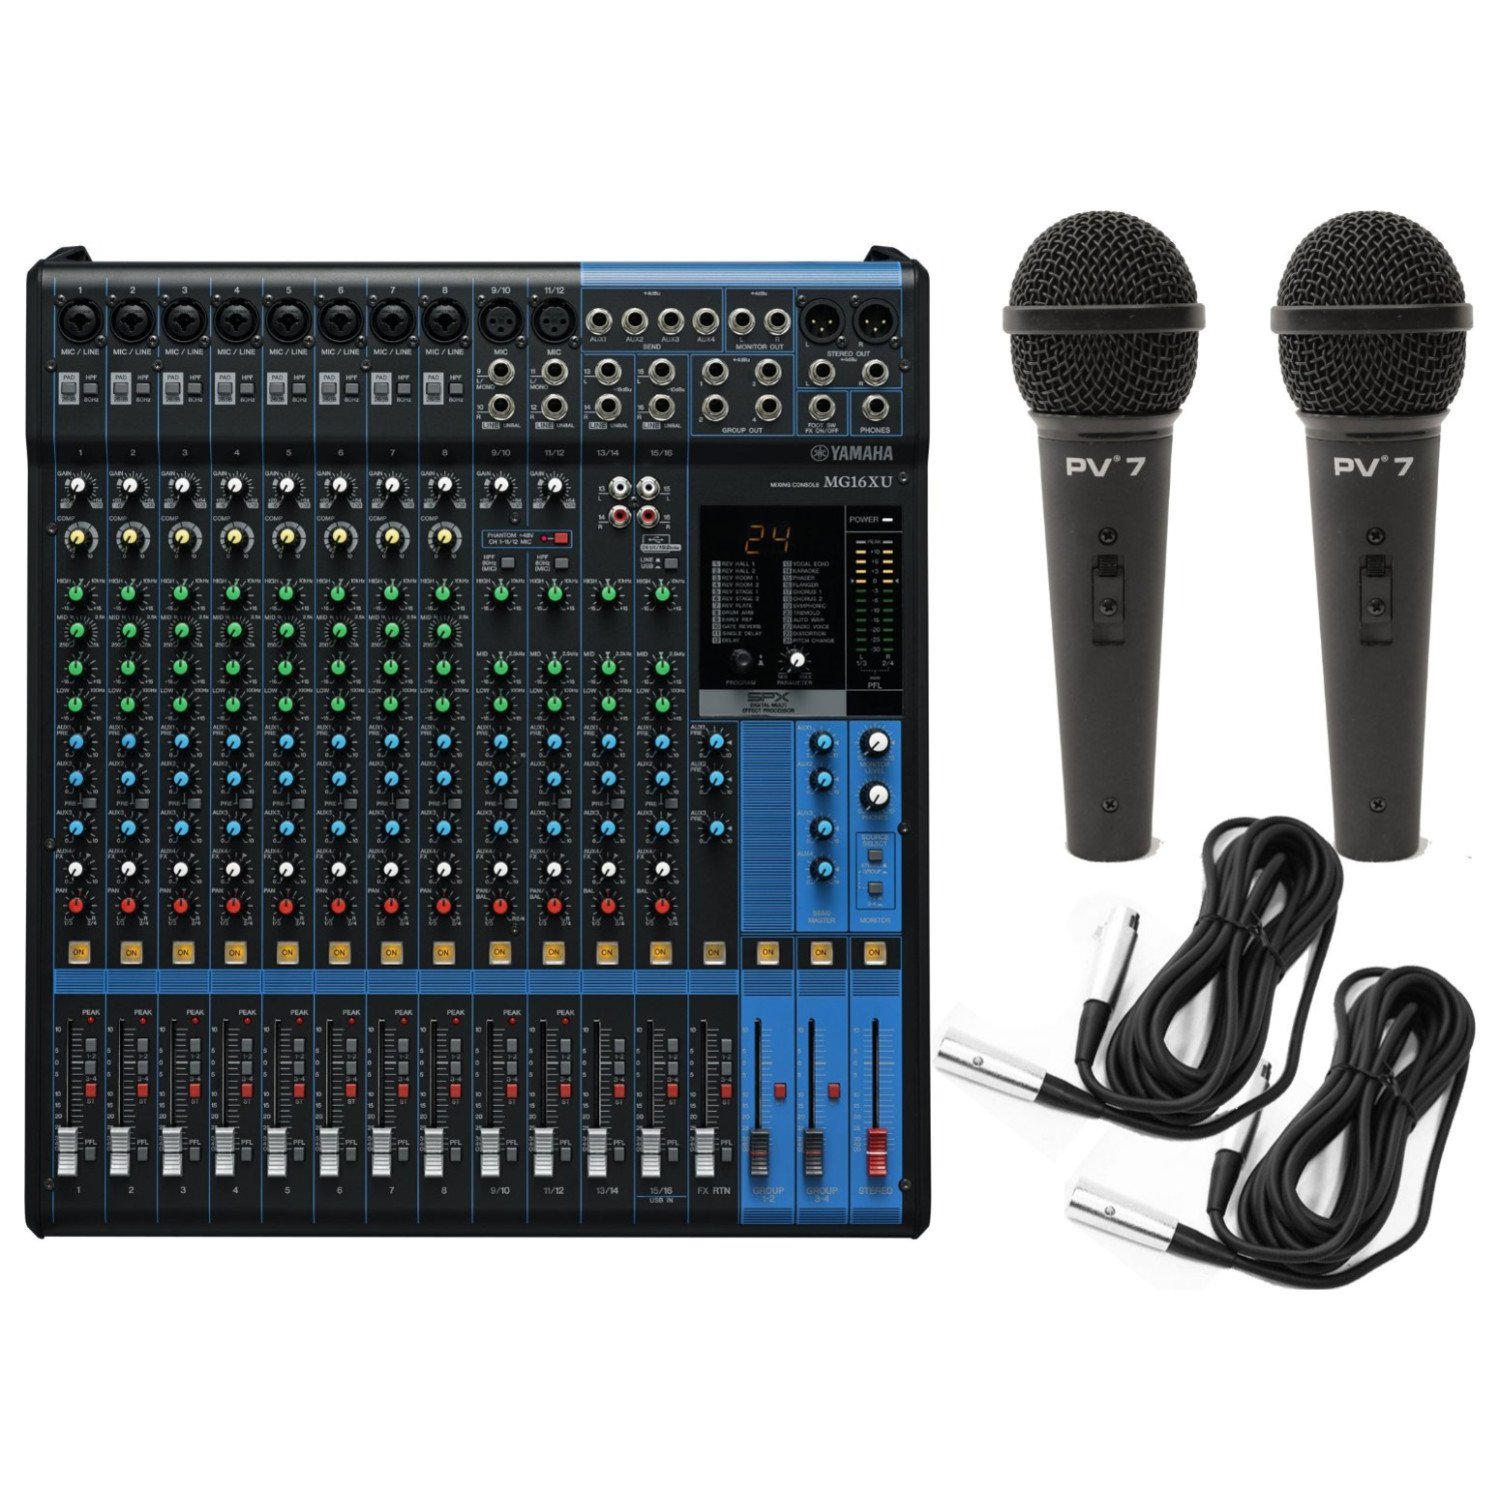 Yamaha Mg16xu 16 Input Analog Mixer With Microphone Mgp12x Preamps Dedicated Stereo Line Channels Aux Sends Eq Digital Effects Audio Usb